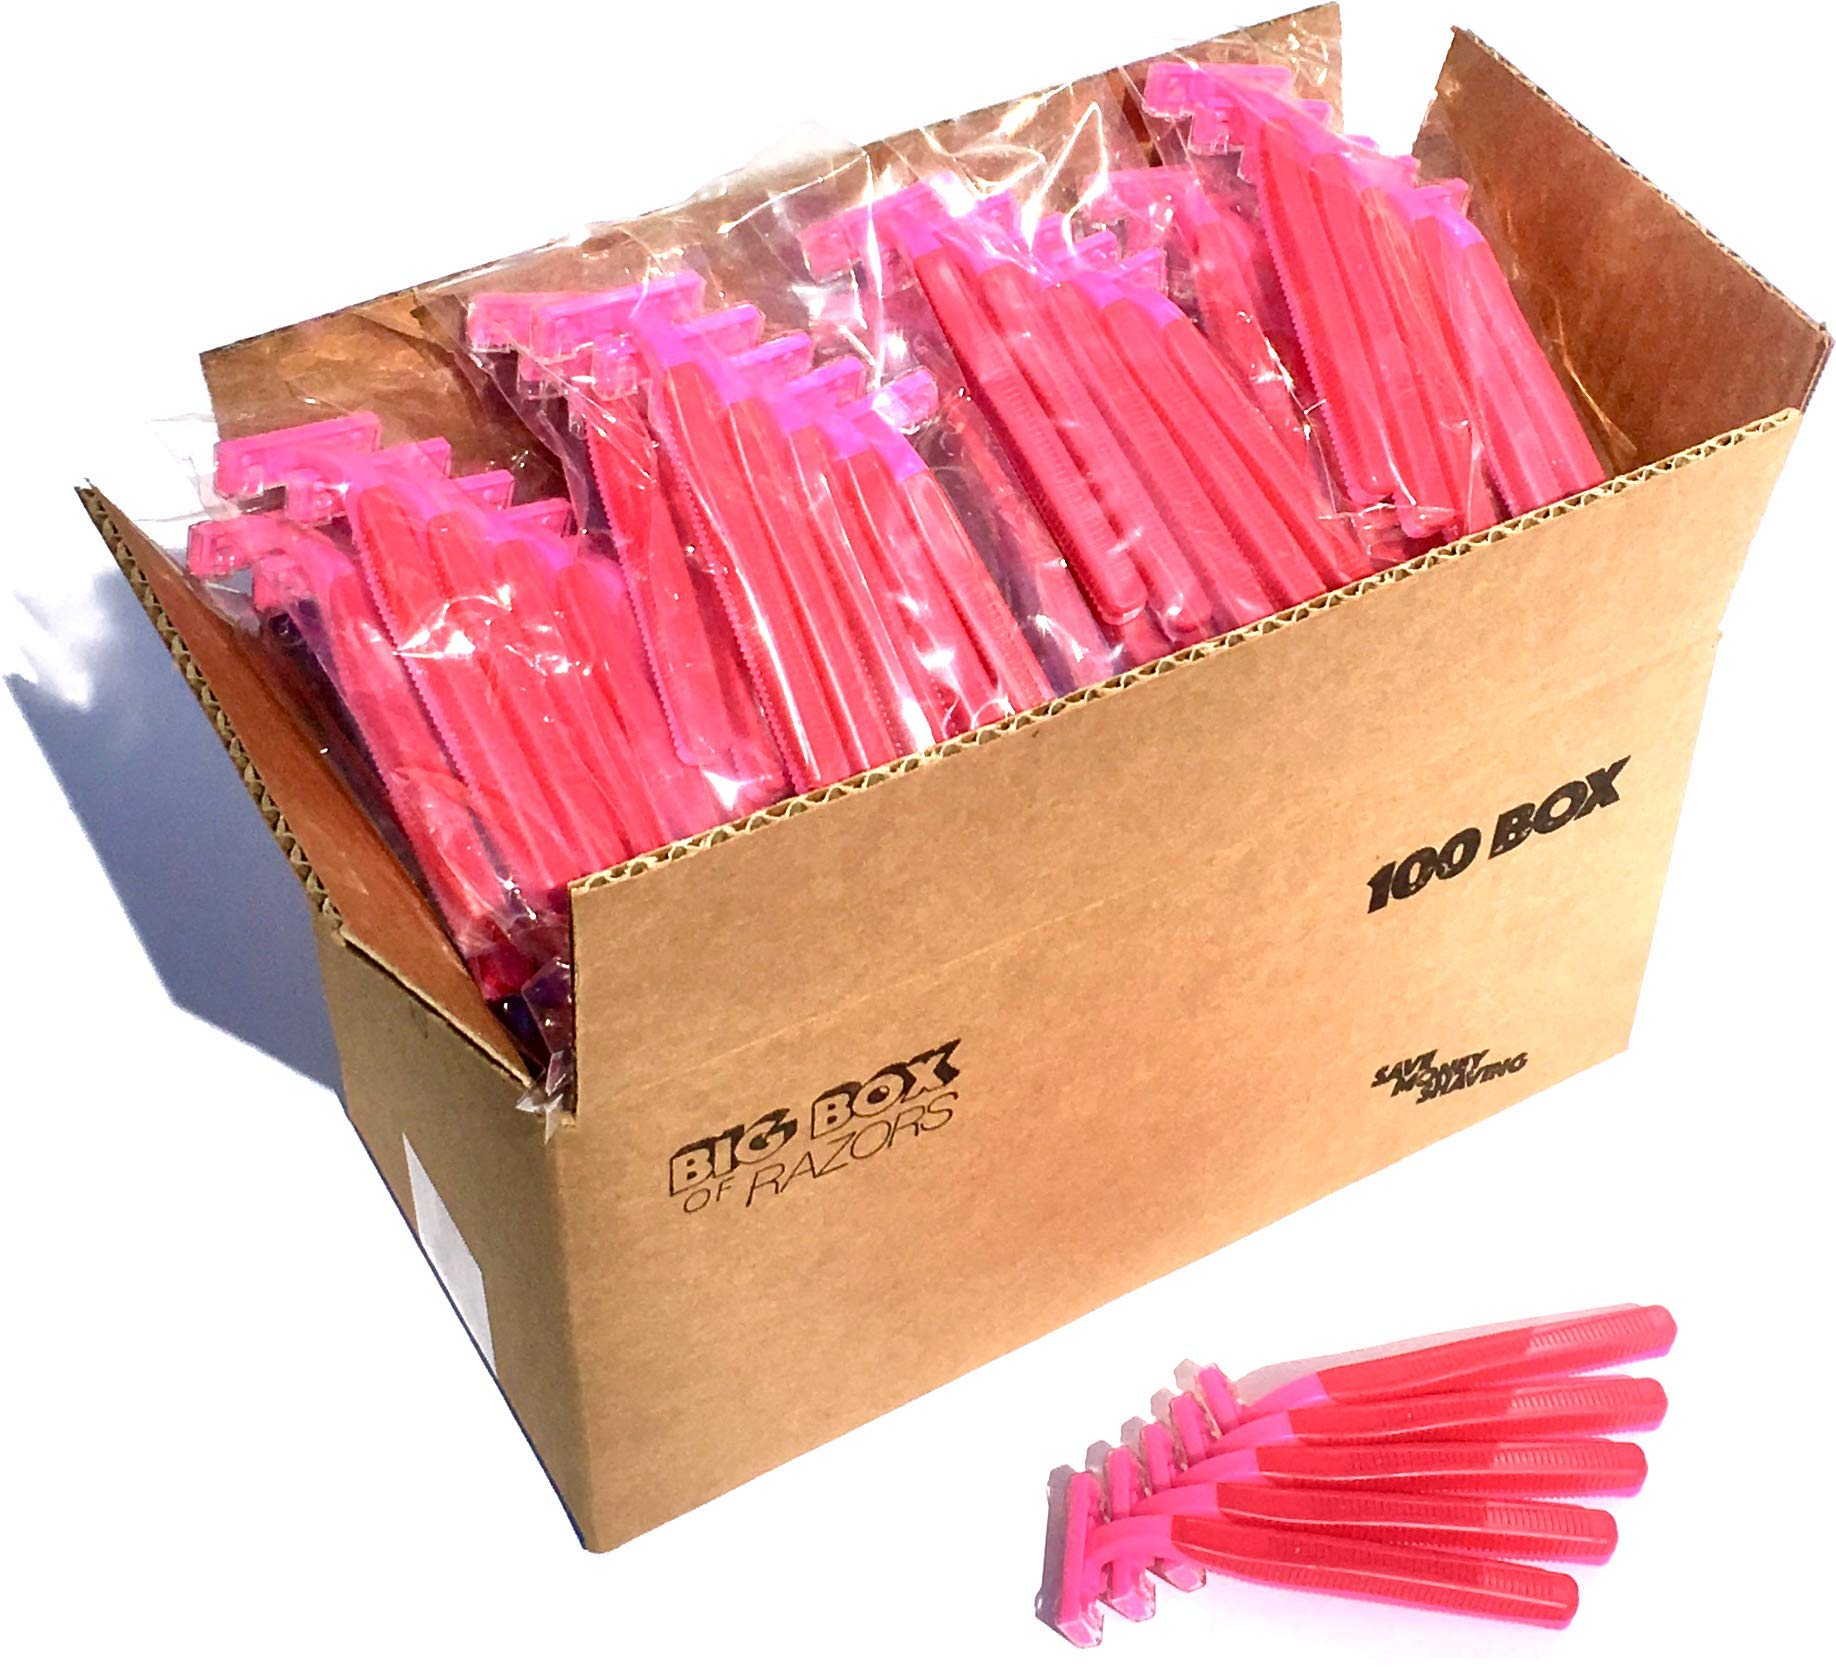 100 Box of Pink Razor Blades Disposable Stainless Steel Hospitality Quality Shavers High End Twin Blade Razors for Men and Women with Aloe Vera Lubrication Strip by Big Box of Razors